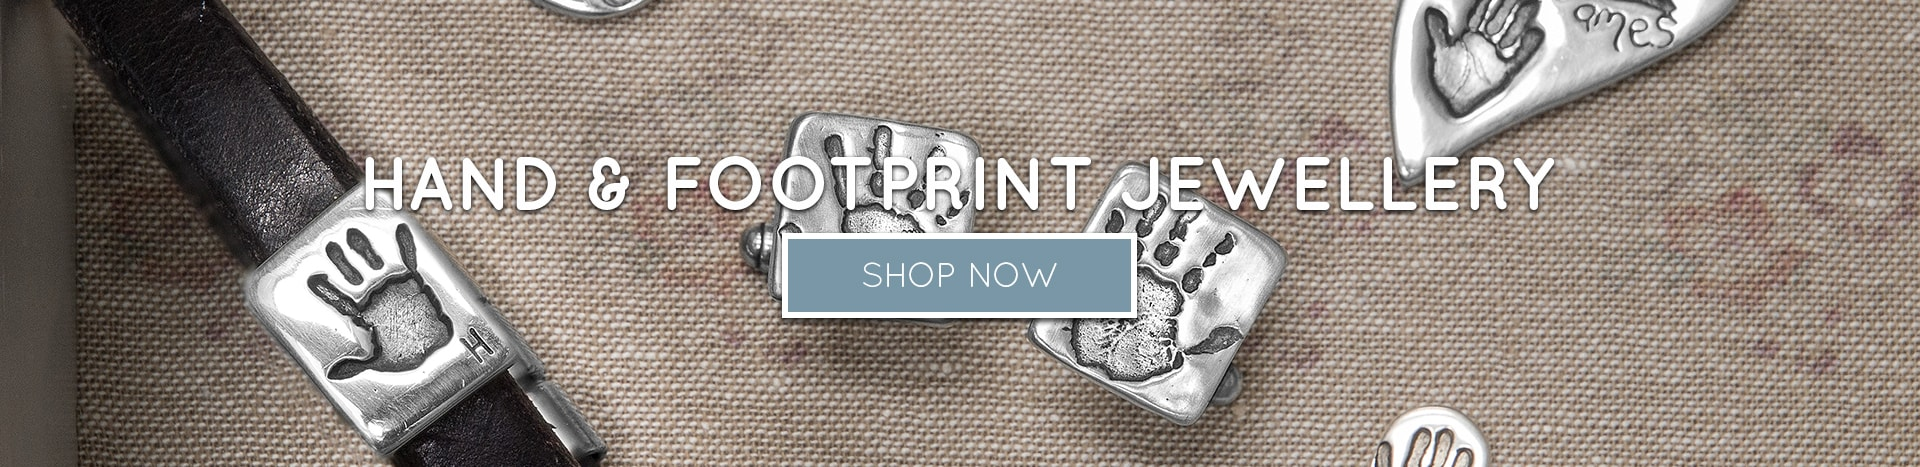 Hand & Footprint Jewellery